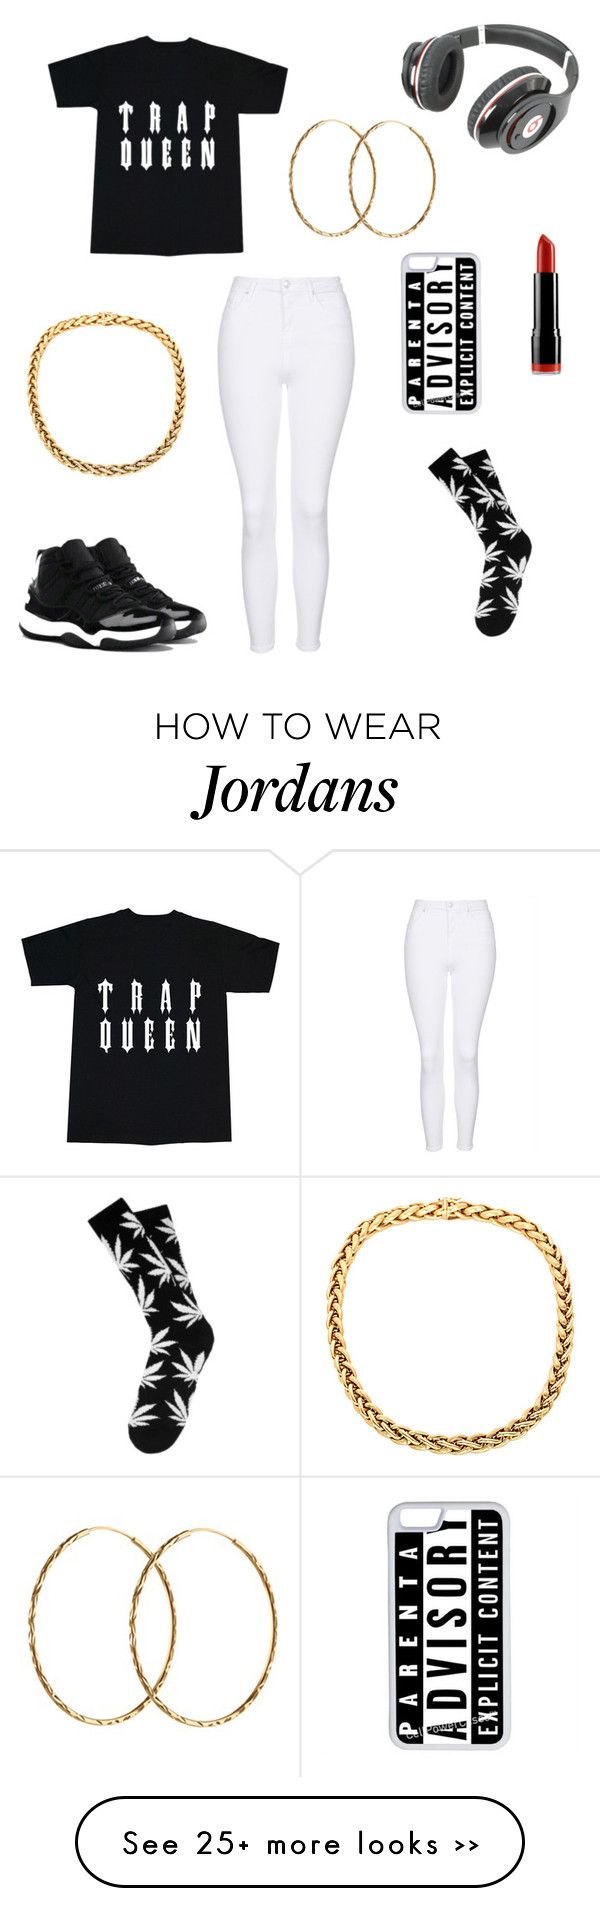 """Untitled #185"" by kawaii2cute on Polyvore featuring Beats by Dr. Dre, Topshop, NYX, NIKE, Pernille Corydon and CellPowerCases"